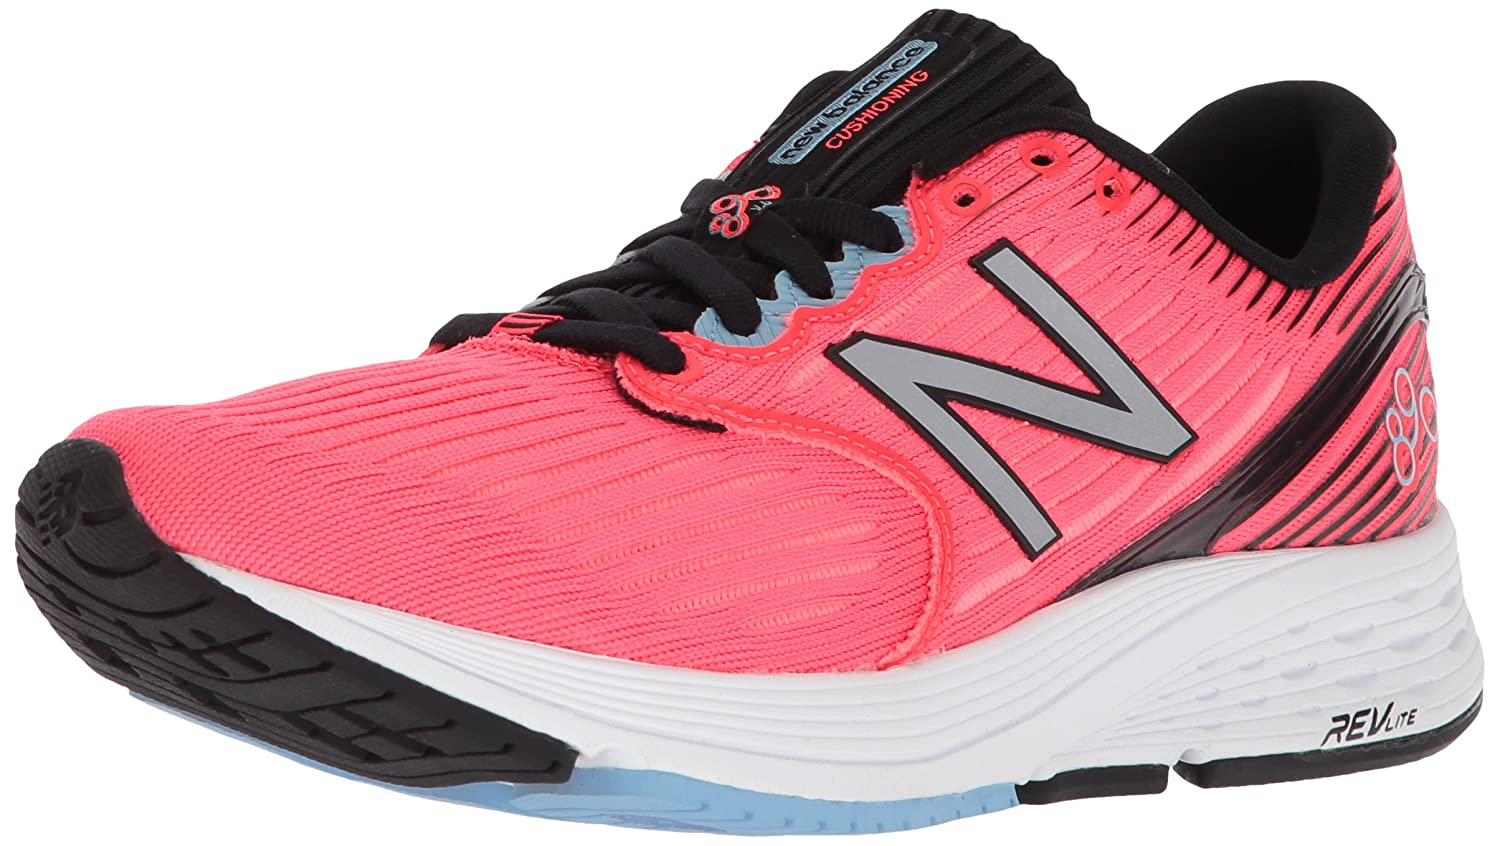 New Balance Women's 890v6 US|Vivid Running Shoe B06XSJ6CFK 5.5 B(M) US|Vivid 890v6 Coral/Black 546546